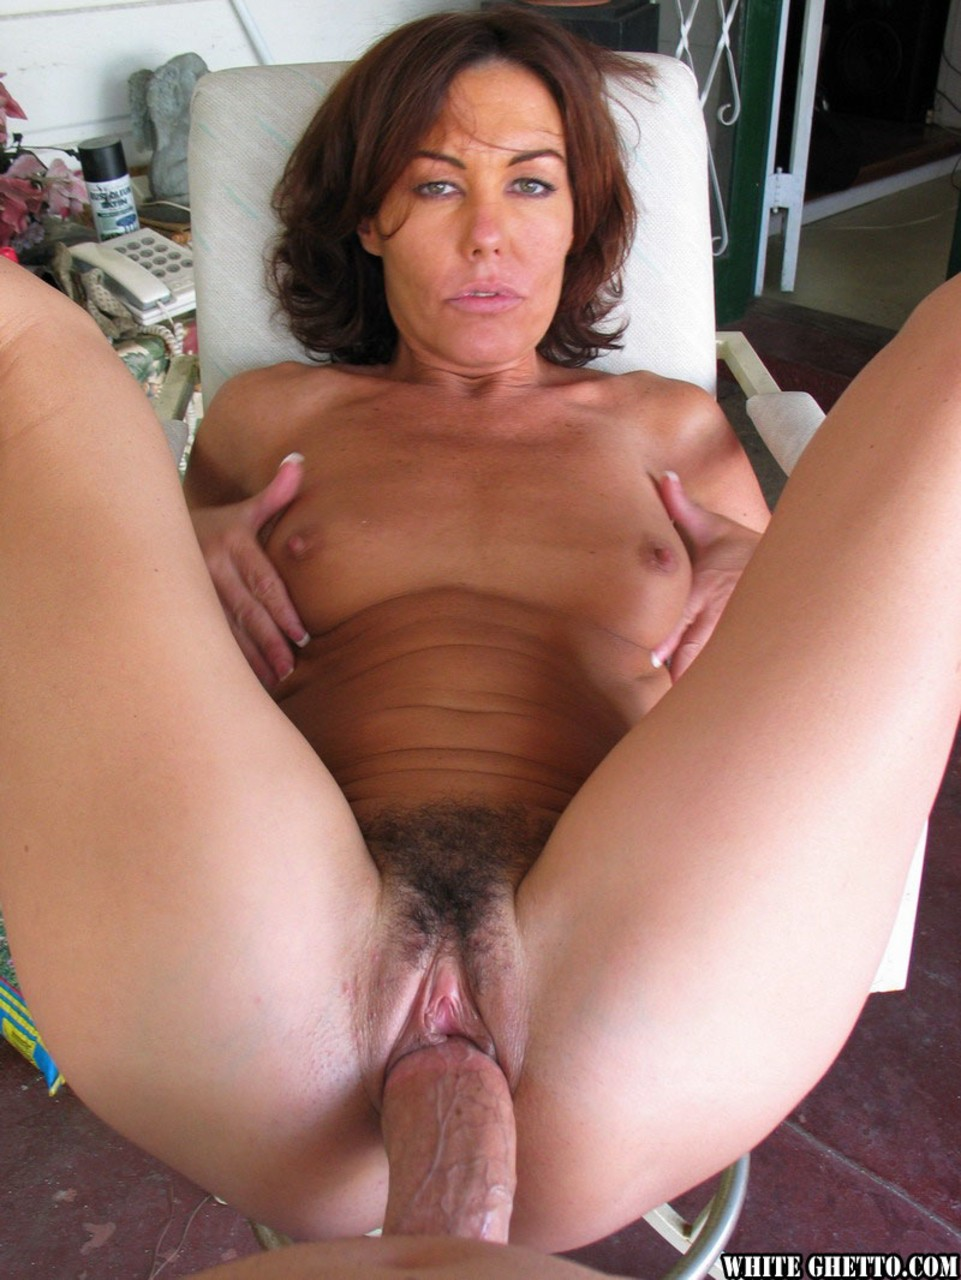 Mom Pov Free Movies